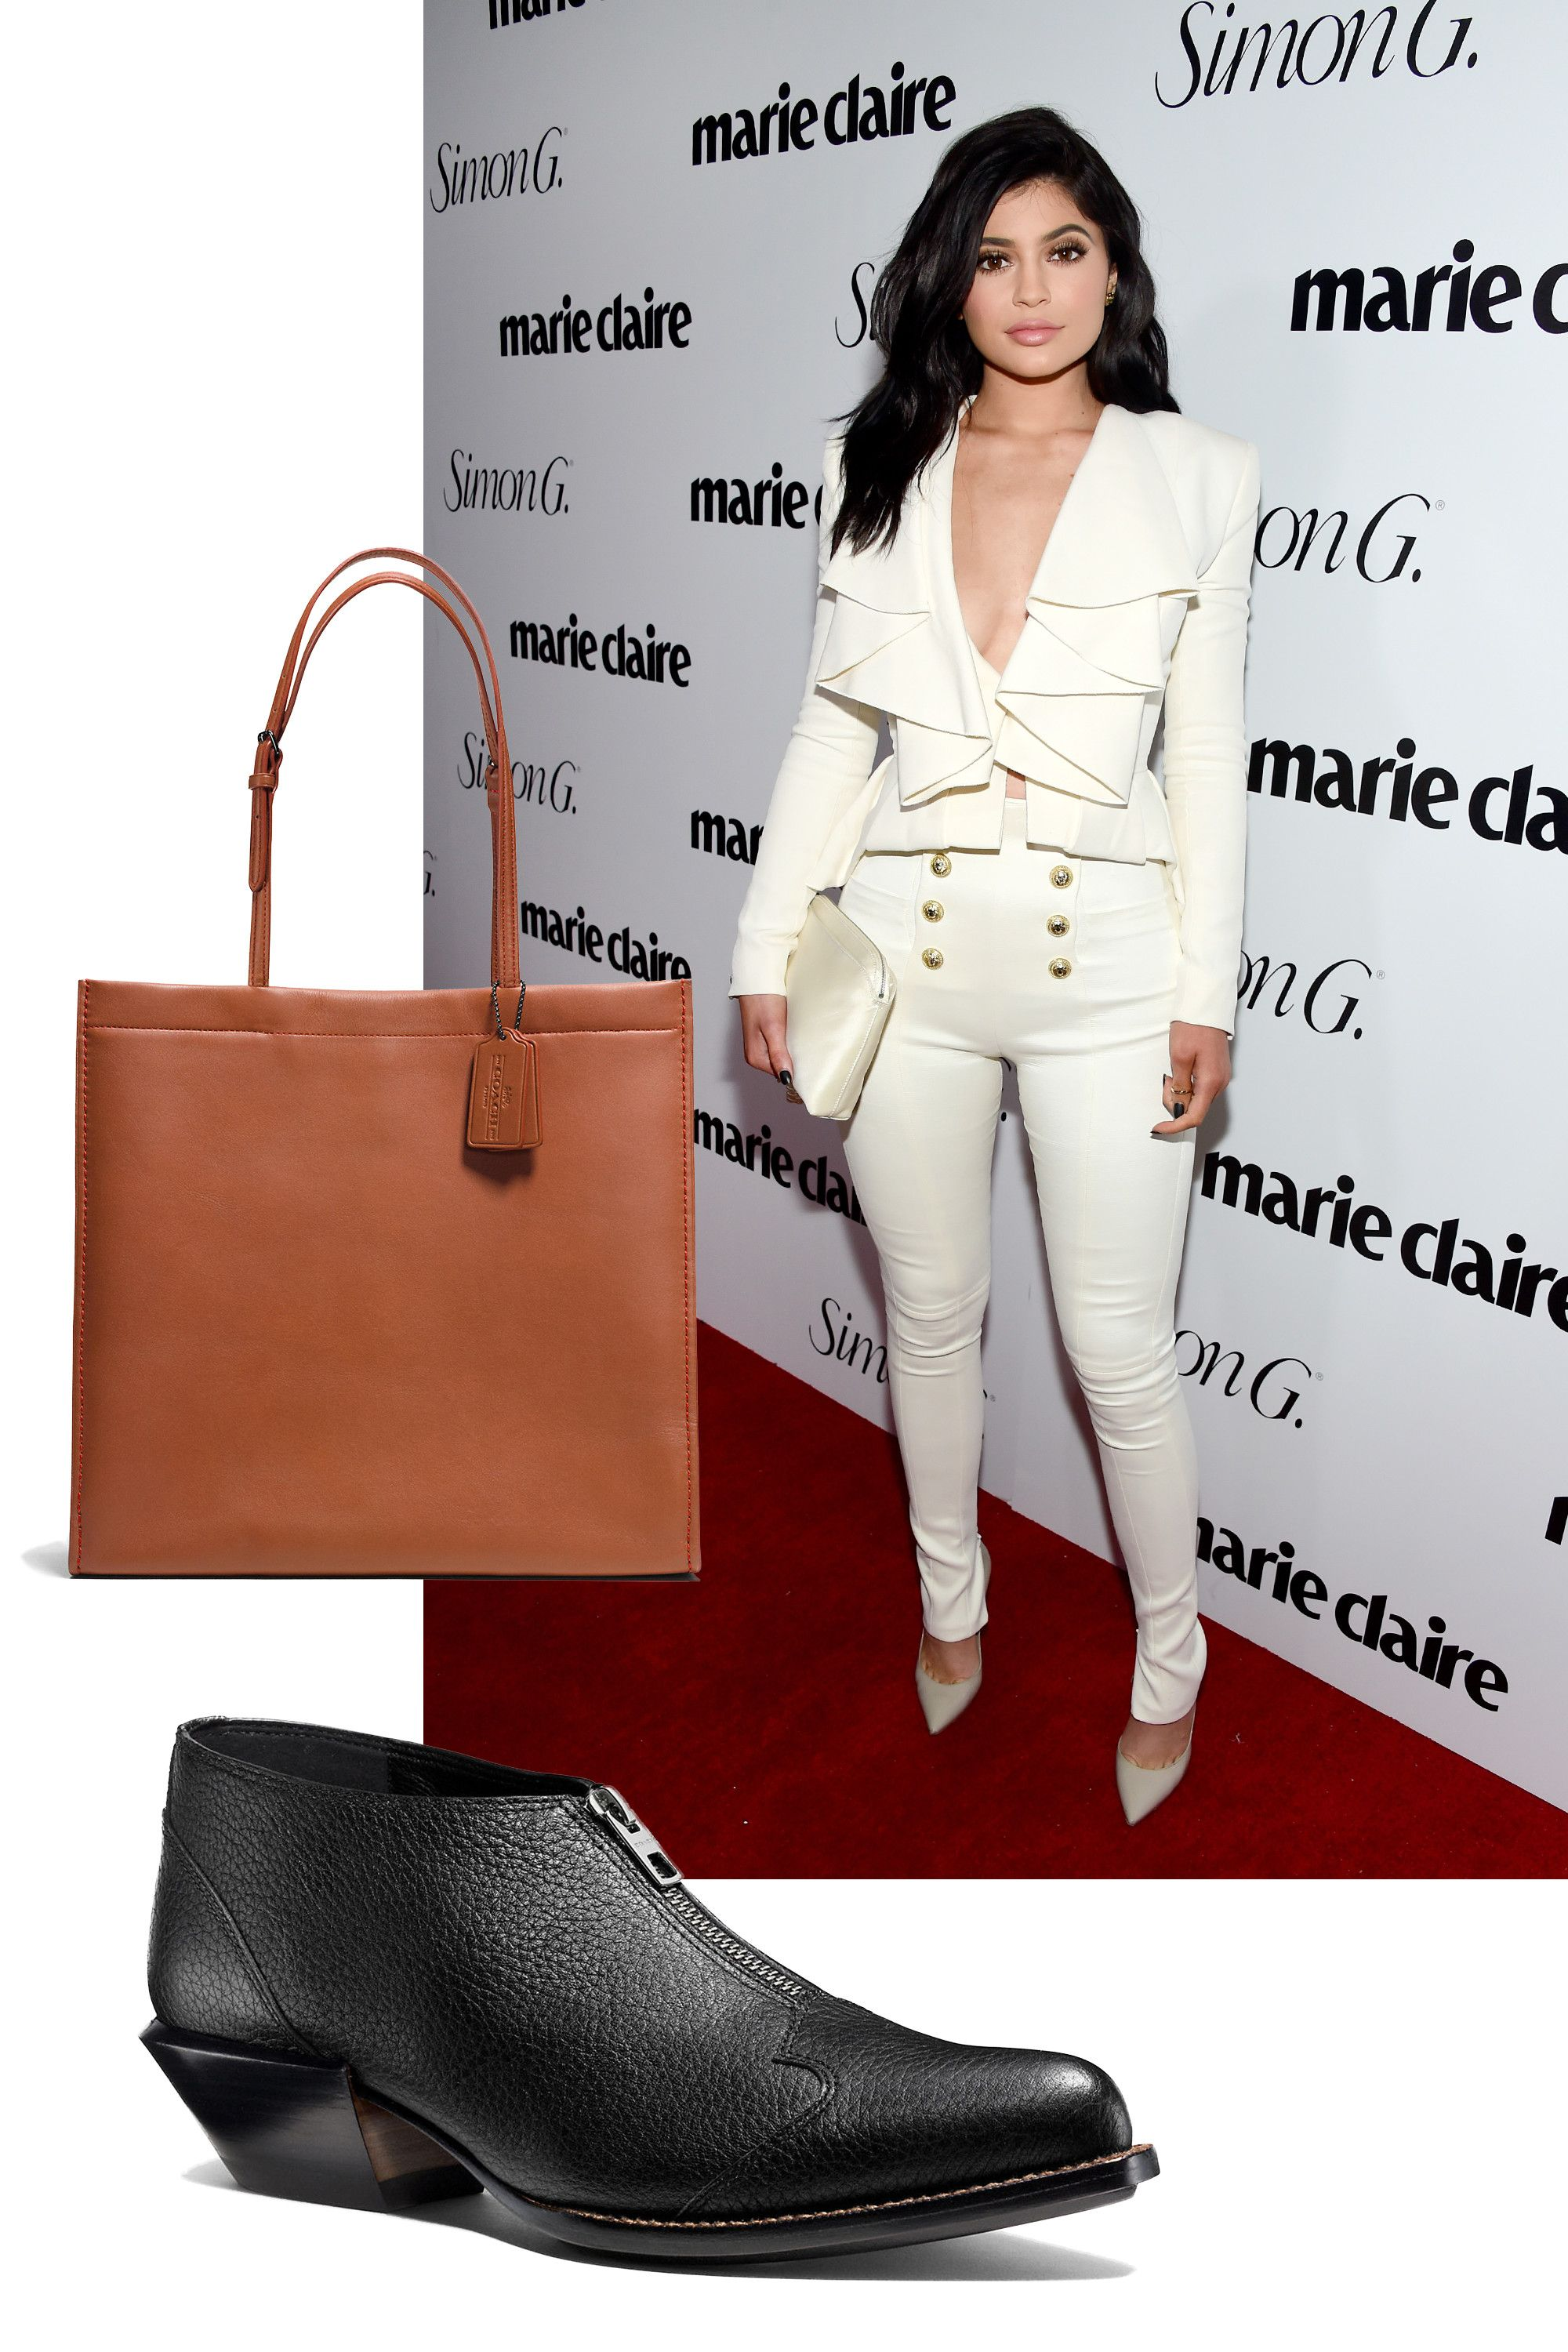 """<p>Pantsuits aren't just something you find in your mom's closet anymore, everyone. All it takes to make Kylie Jenner's stunning party look appropriate for waking hours is a chunky black boot and an oversized tote bag. Voila, nailed it. </p><p><br> </p><p><em>Coach Skinny Tote, $695, <a rel=""""noskim"""" href=""""http://www.coach.com/skinny-tote-in-glovetanned-leather/37295.html?dwvar_color=DKEUX&CID=D_B_MRC_10796"""" target=""""_blank"""">coach.com</a>; Coach Bandit Zip Shoe, $395, </em><a rel=""""noskim"""" href=""""http://www.coach.com/coach-designer-booties-bandit-zip-shoe/Q8176.html?CID=D_B_MRC_10797"""" target=""""_blank""""><em>coach.com</em></a></p>"""